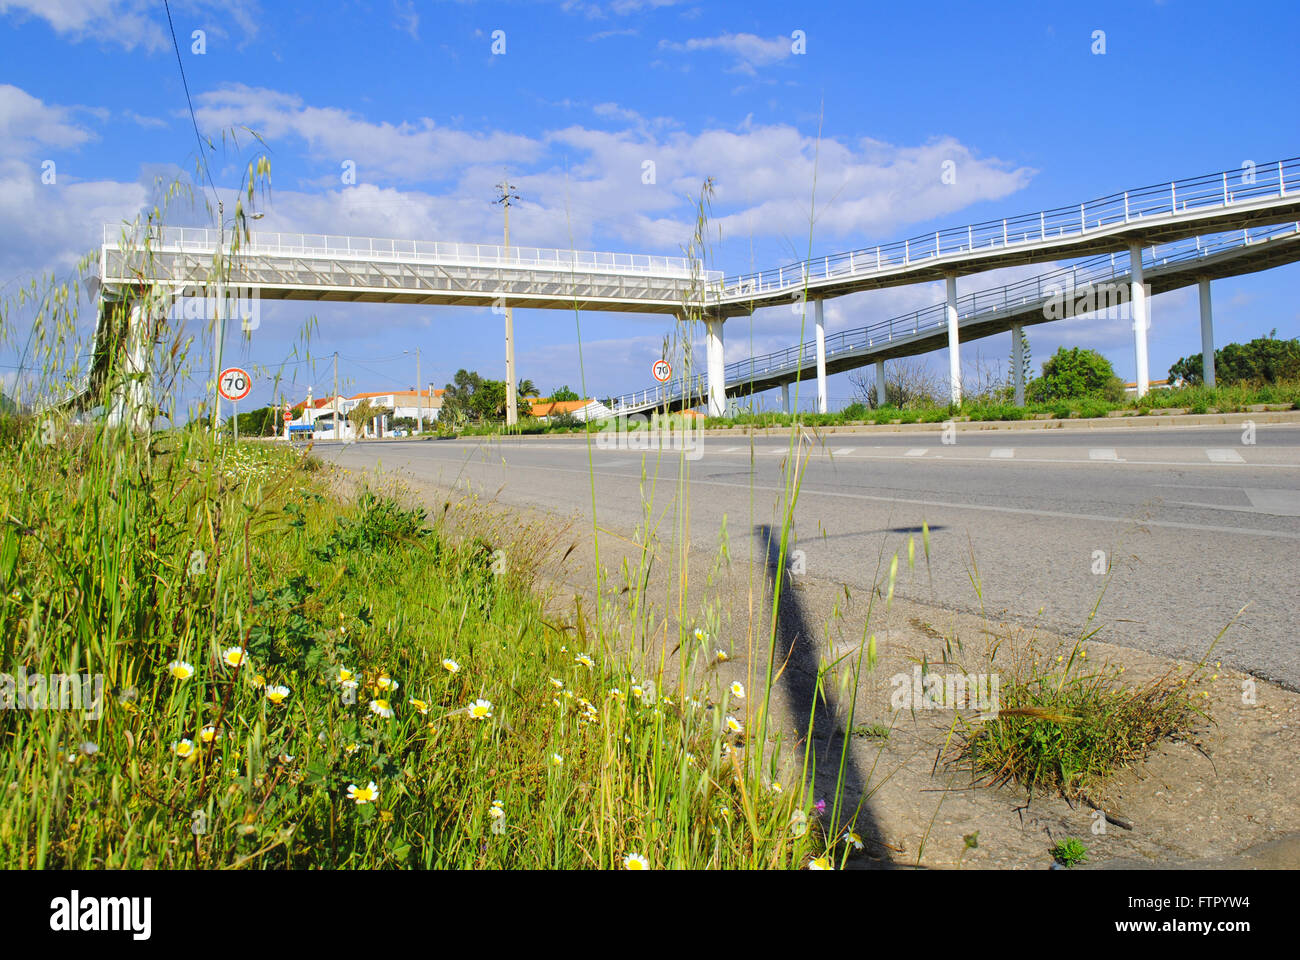 A footbridge over the N125 national road for pedestrians and cyclists in the Algarve region, Portugal. Stock Photo